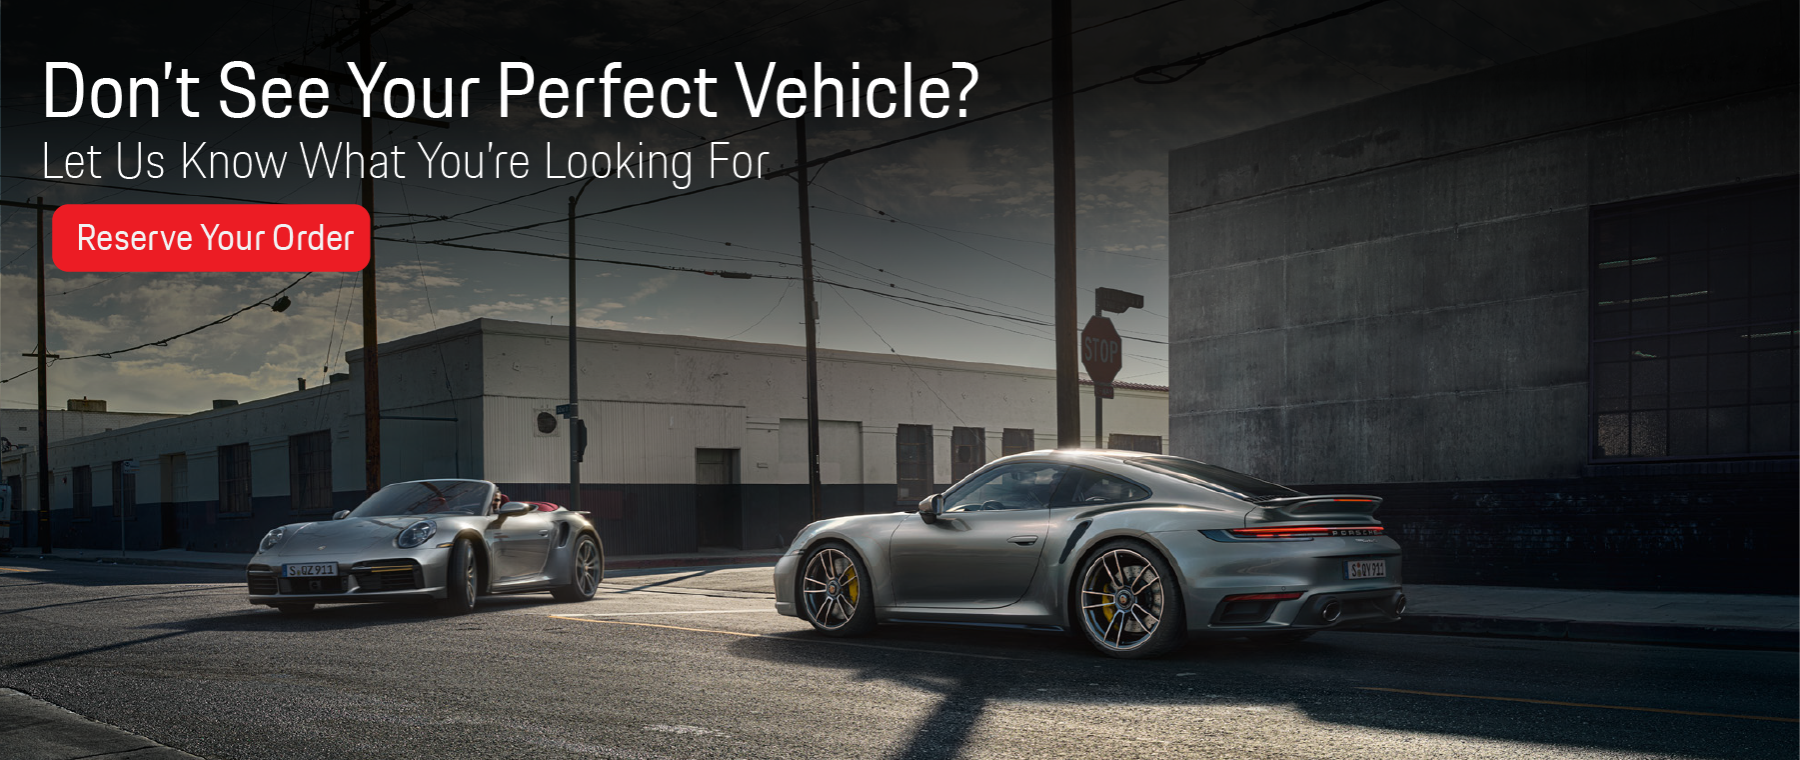 Don't See Your Perfect Vehicle Banner 1800×760